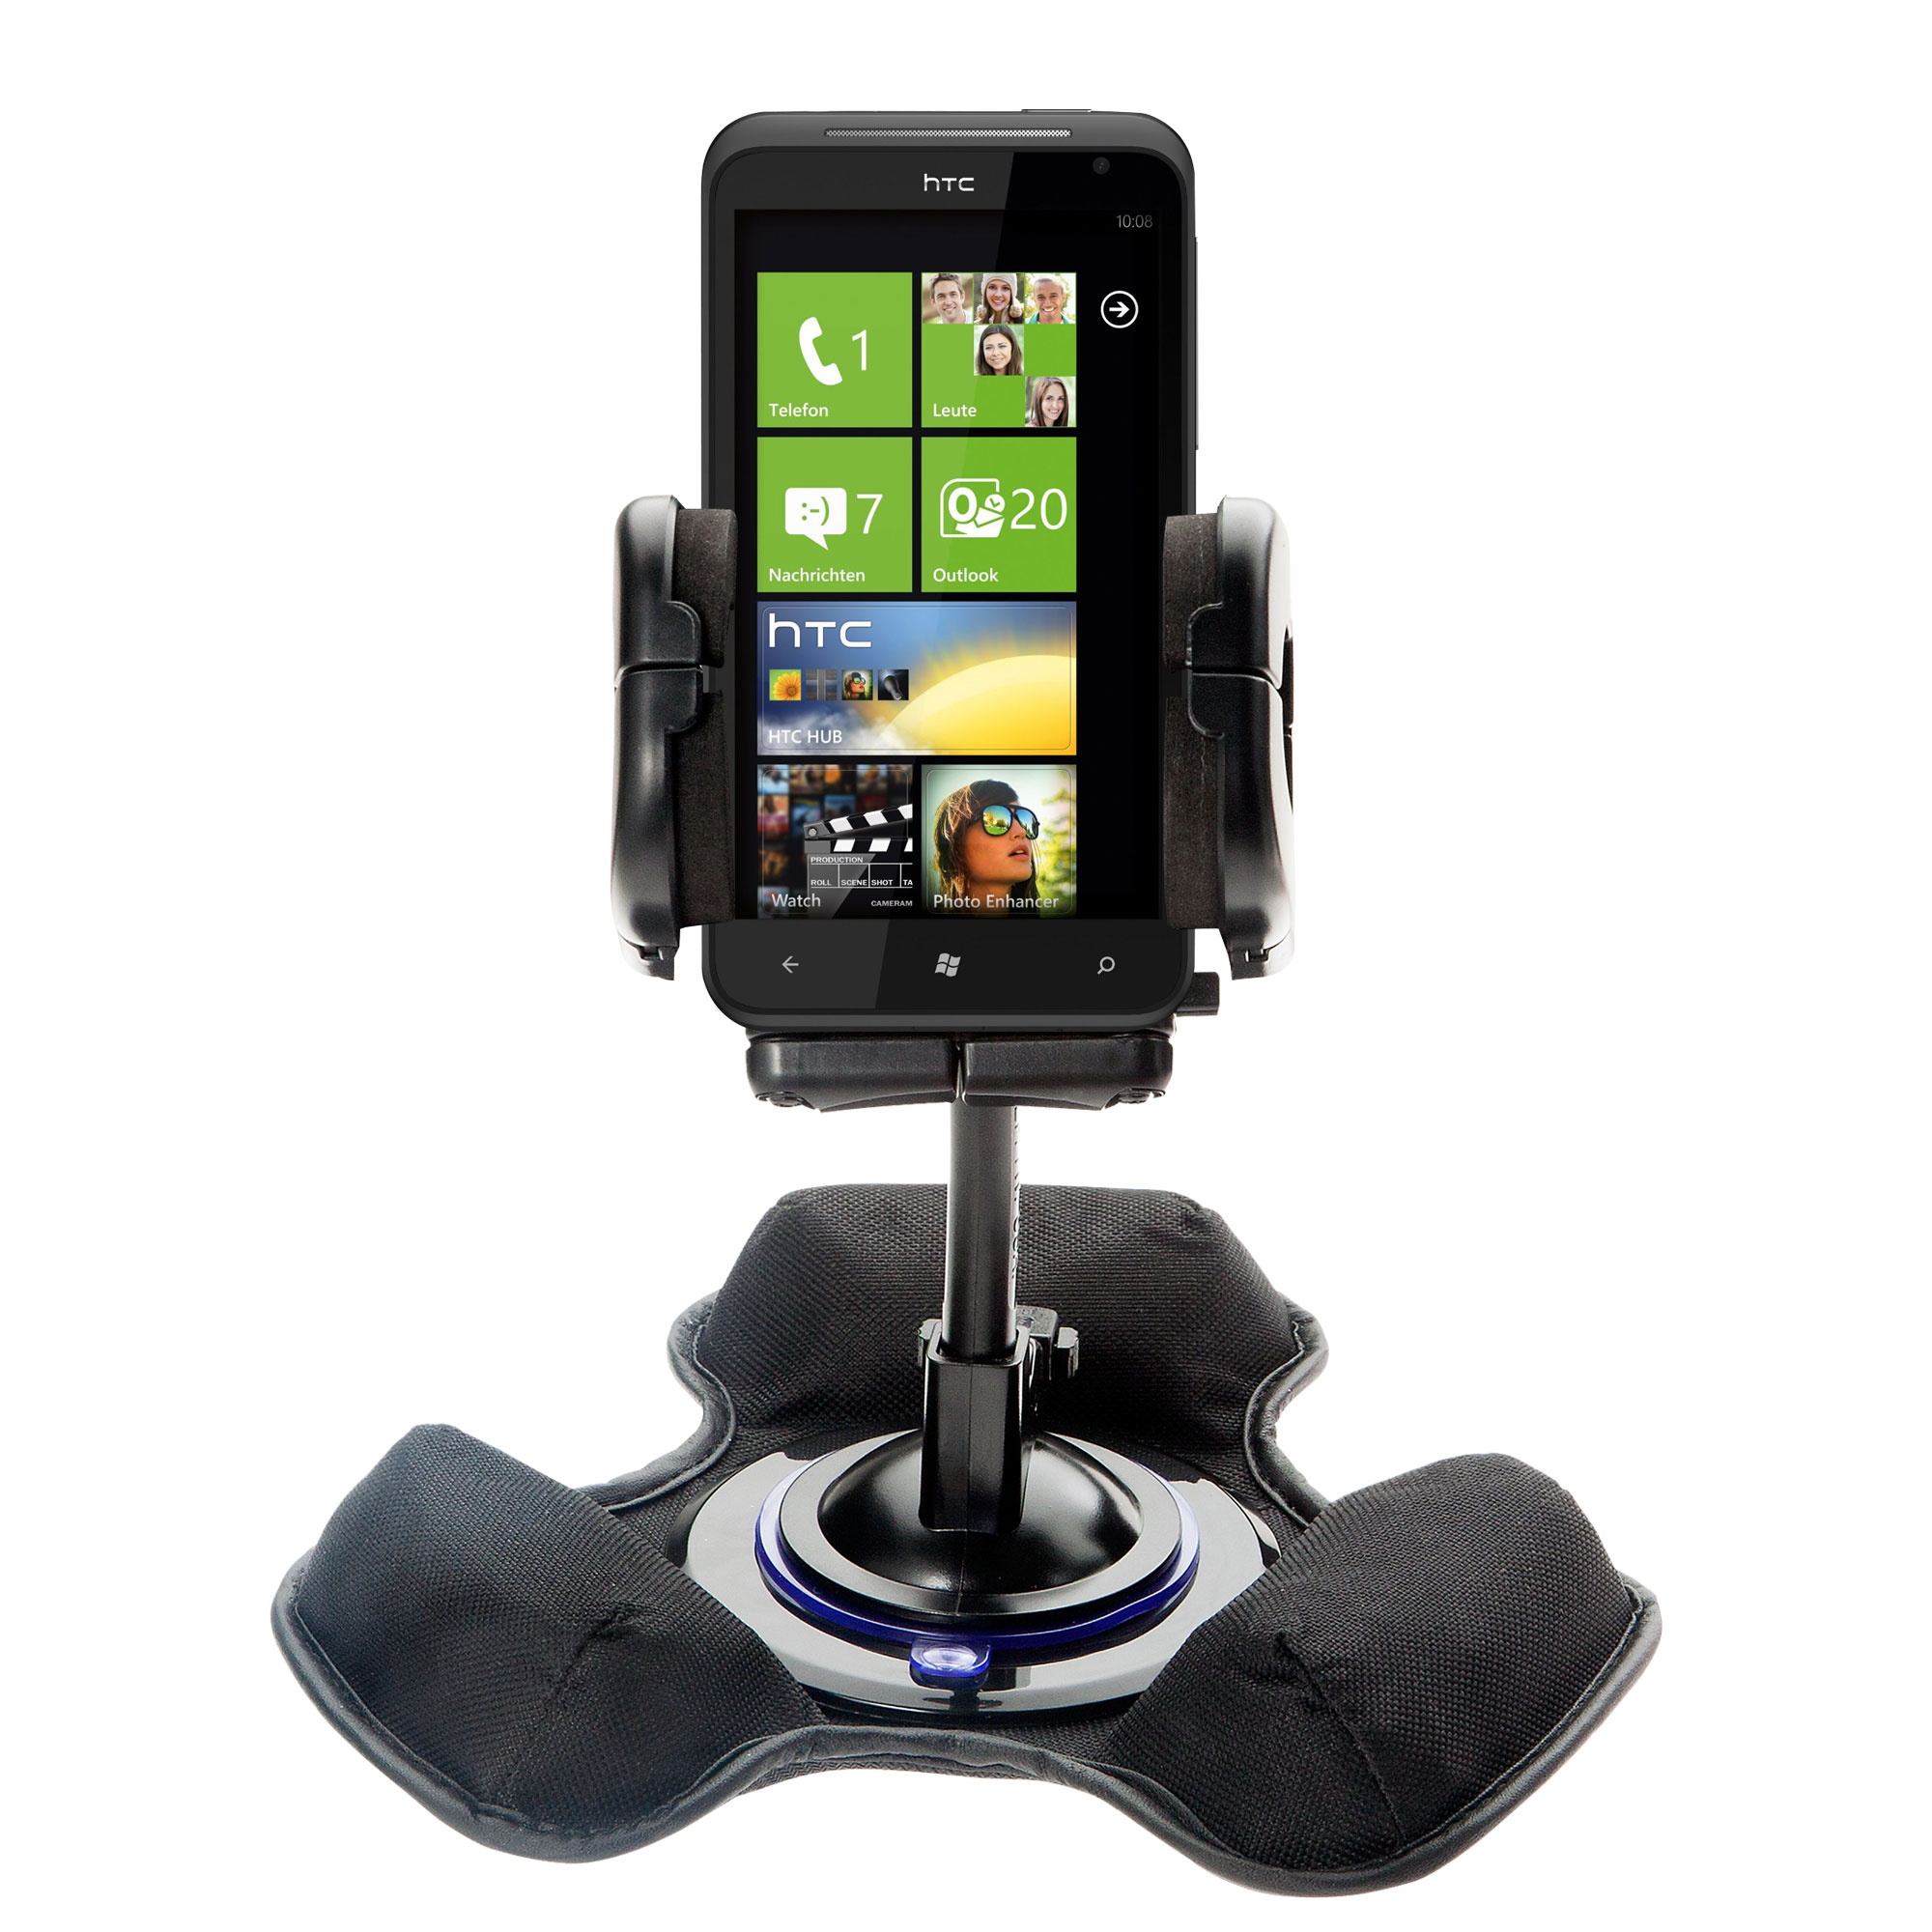 Dash and Windshield Holder compatible with the HTC Titan